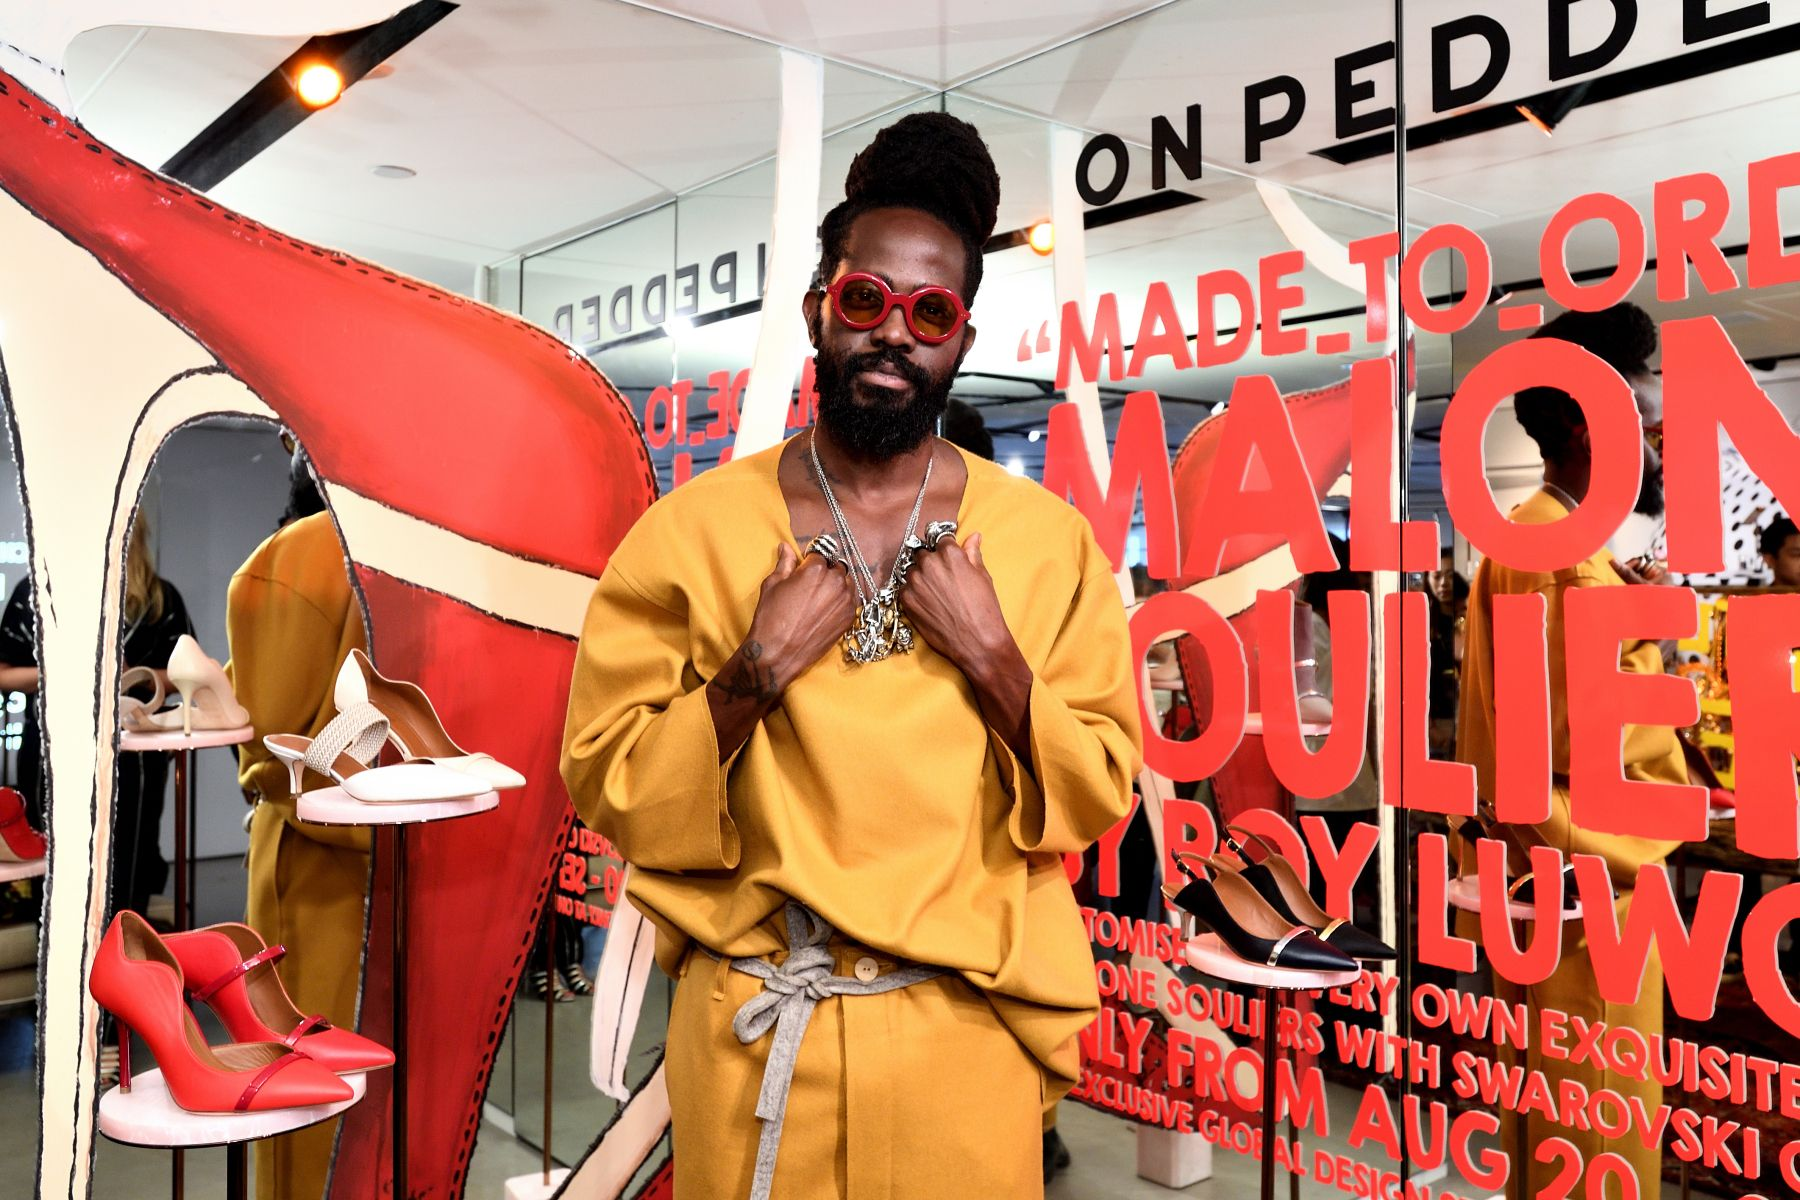 5 Minutes With Roy Luwolt Of Cult Favourite Shoe Brand Malone Souliers